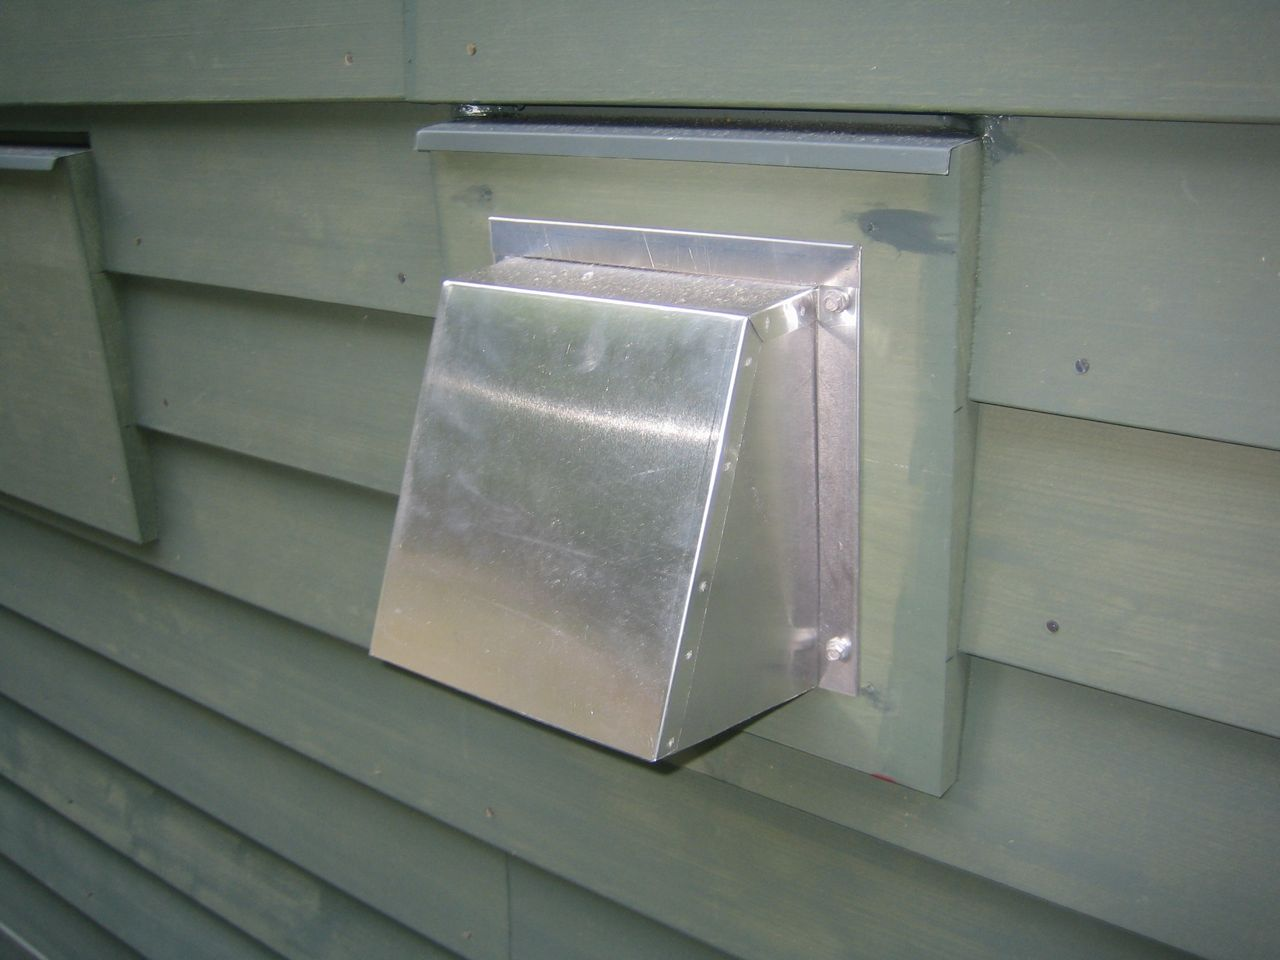 1280 Exterior Fresh Air Intake 4 Feet Above Ground Level Fresh Air Intake  #70665B 960